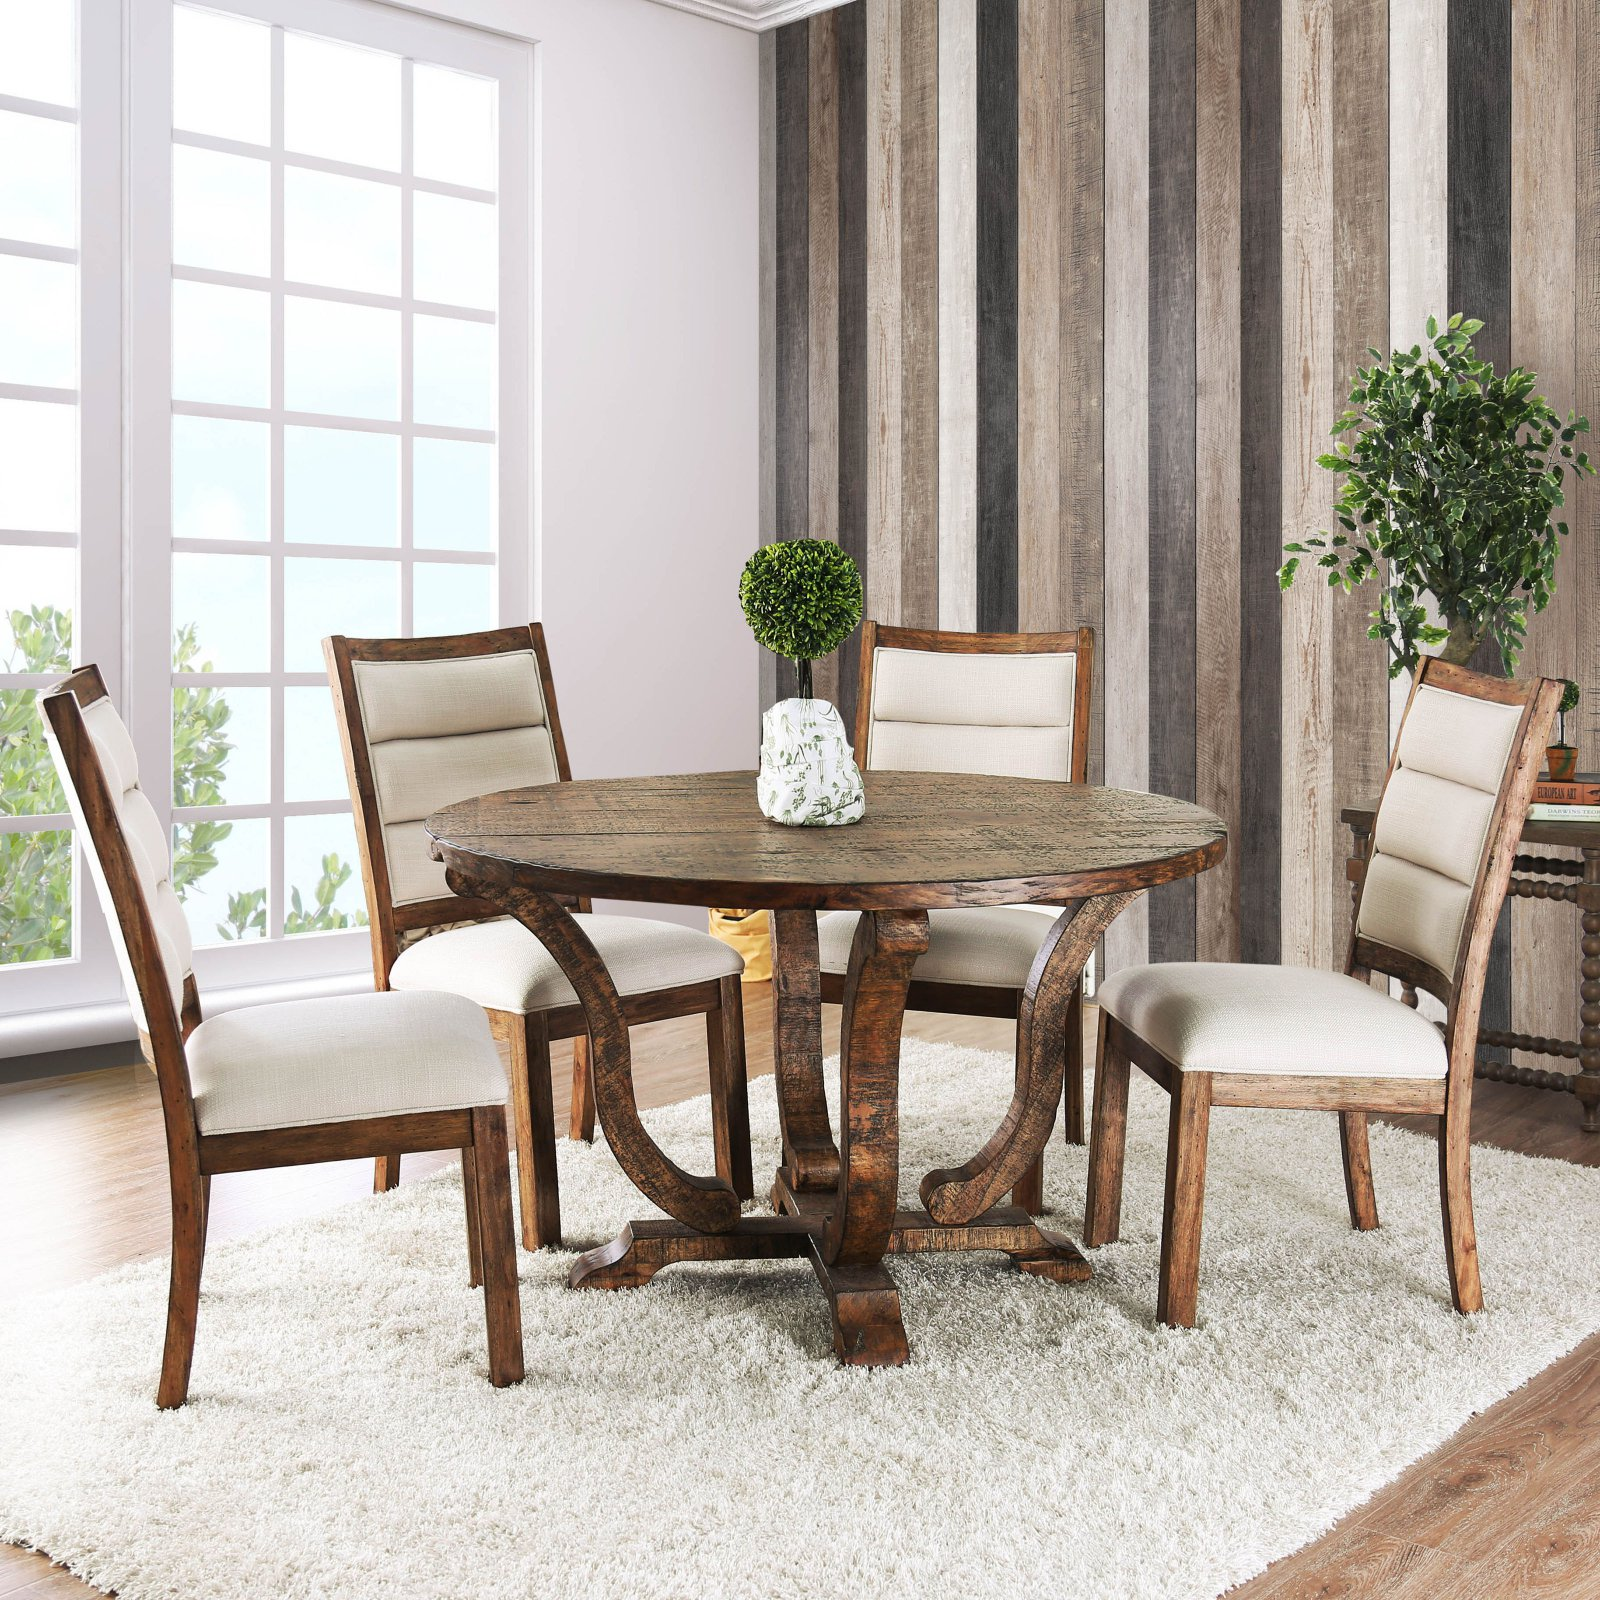 mockinbirdhillcottage rustic round kitchen table and chairs